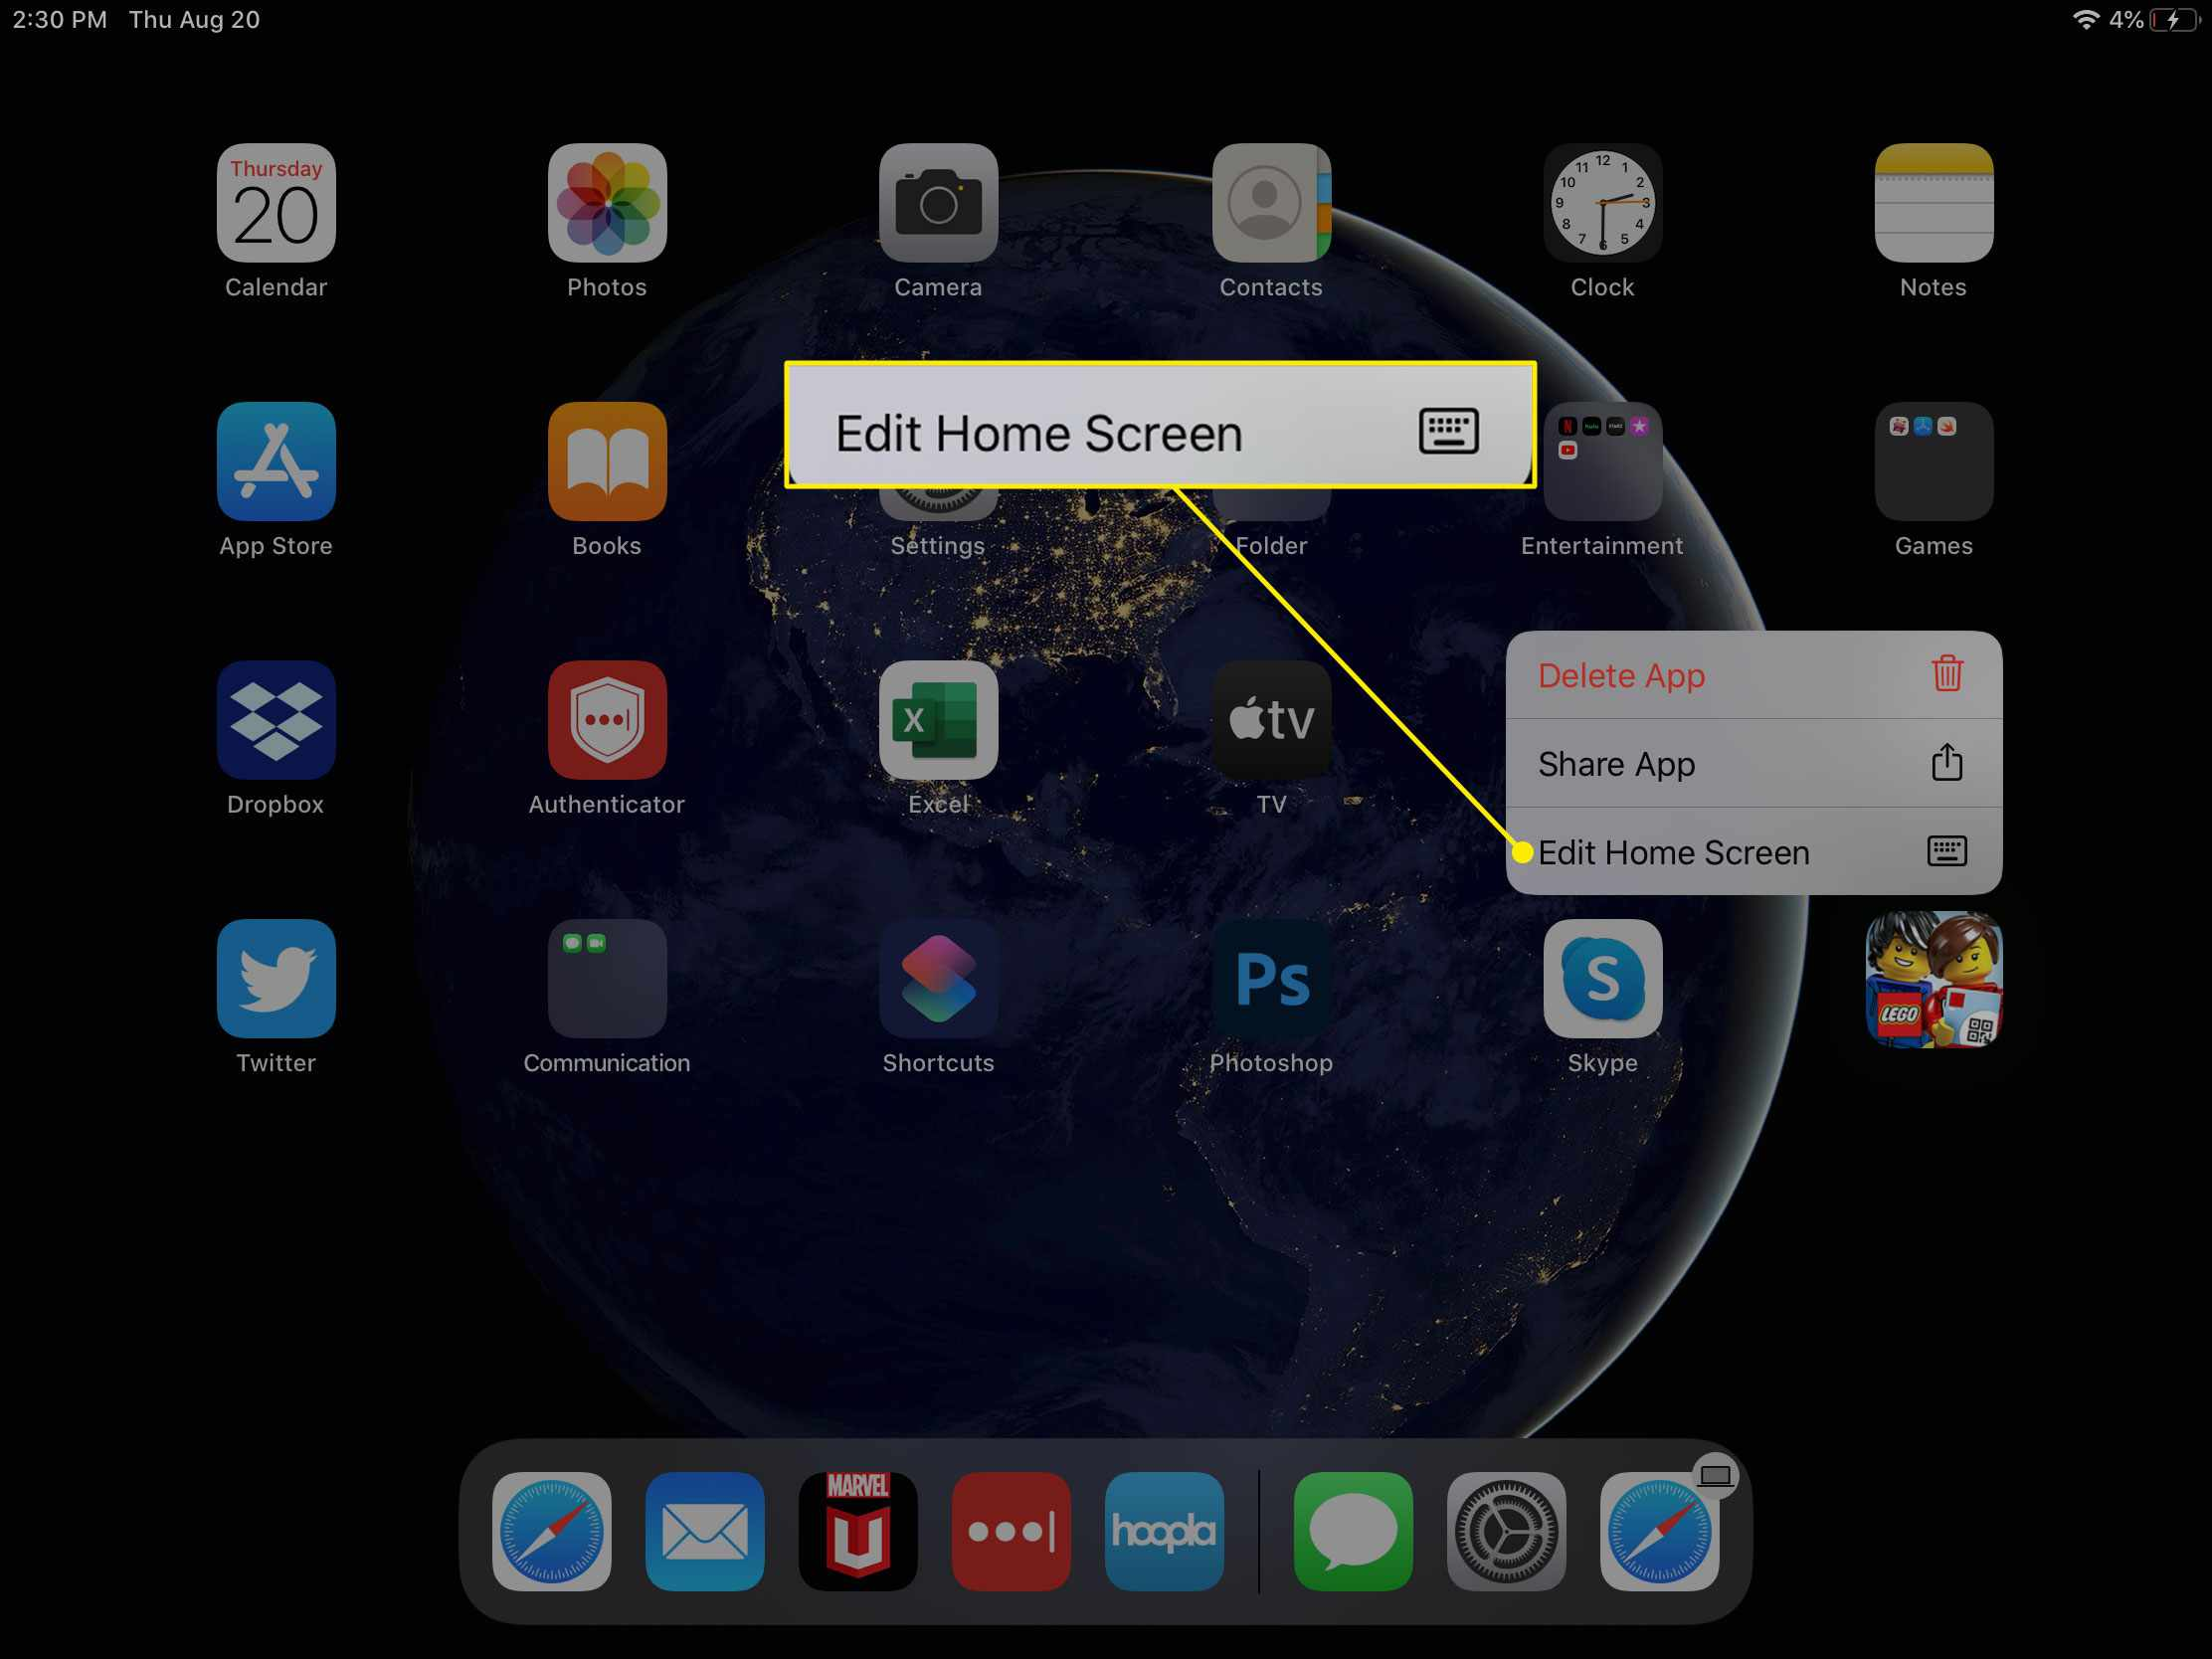 The Edit Home Screen command on an iPad